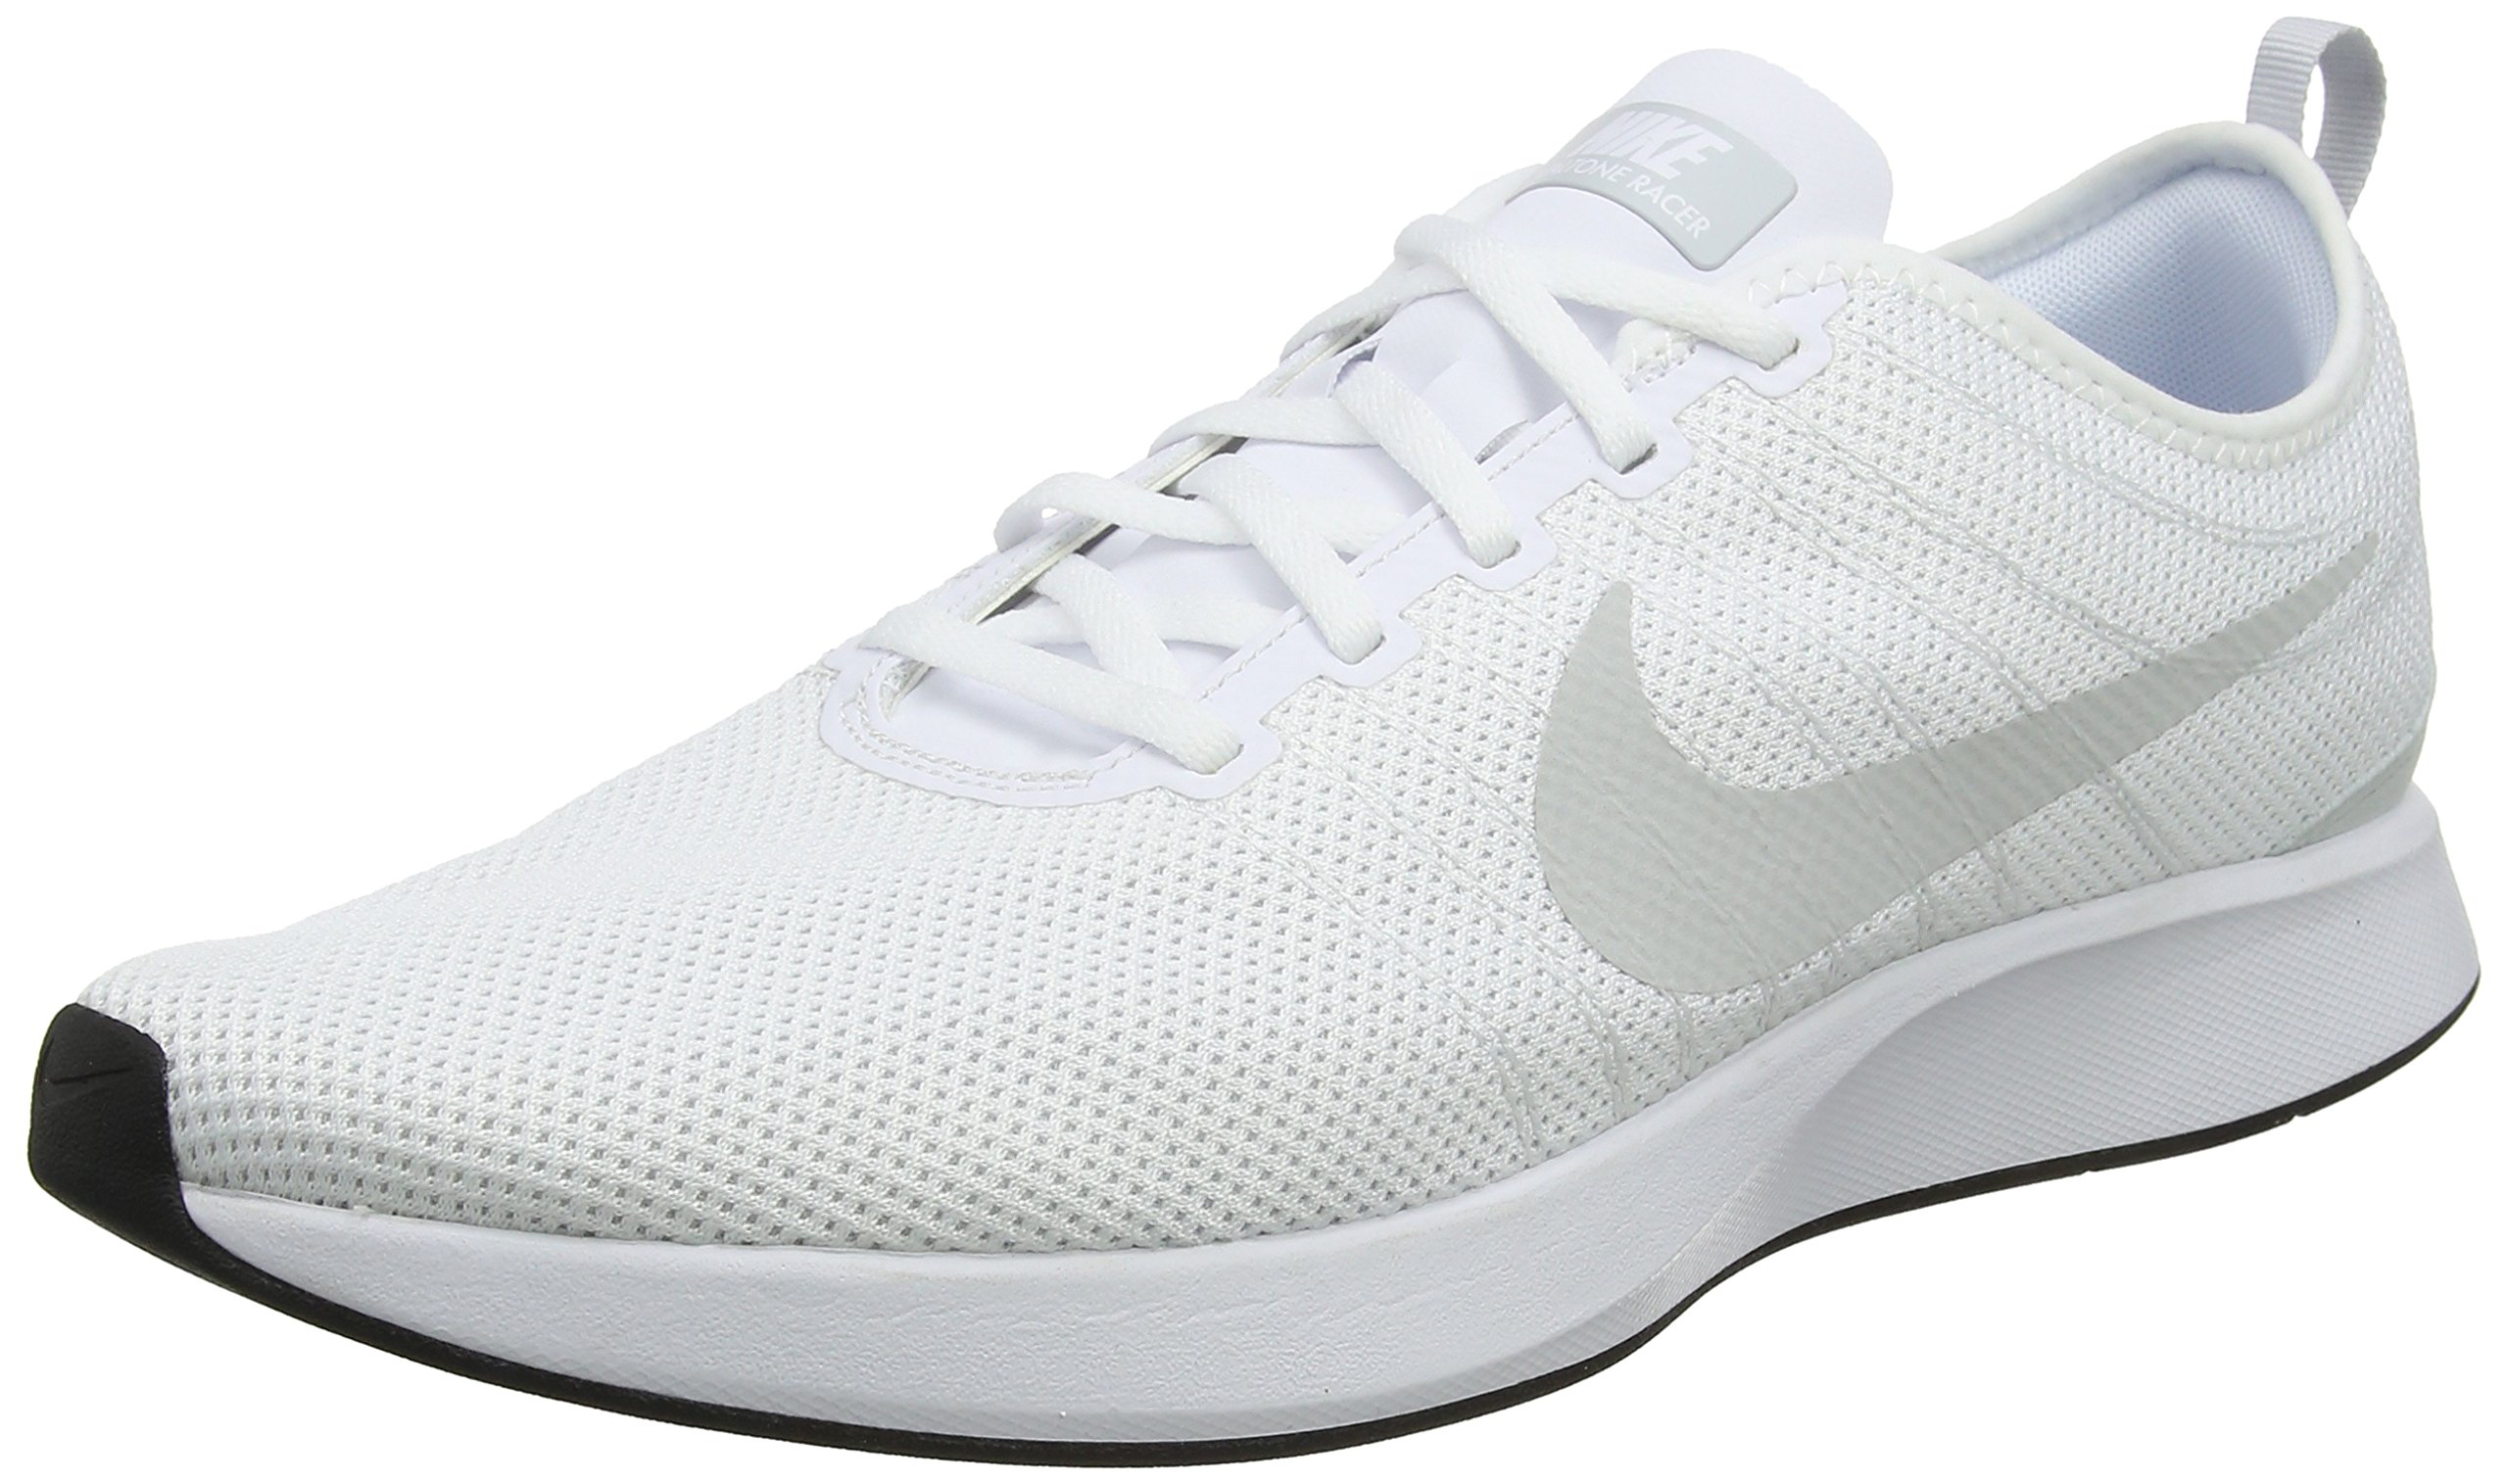 c6fa852aab18 Galleon - Nike Dualtone Racer Mens Running Trainers 918227 Sneakers Shoes  (UK 7.5 US 8.5 EU 42